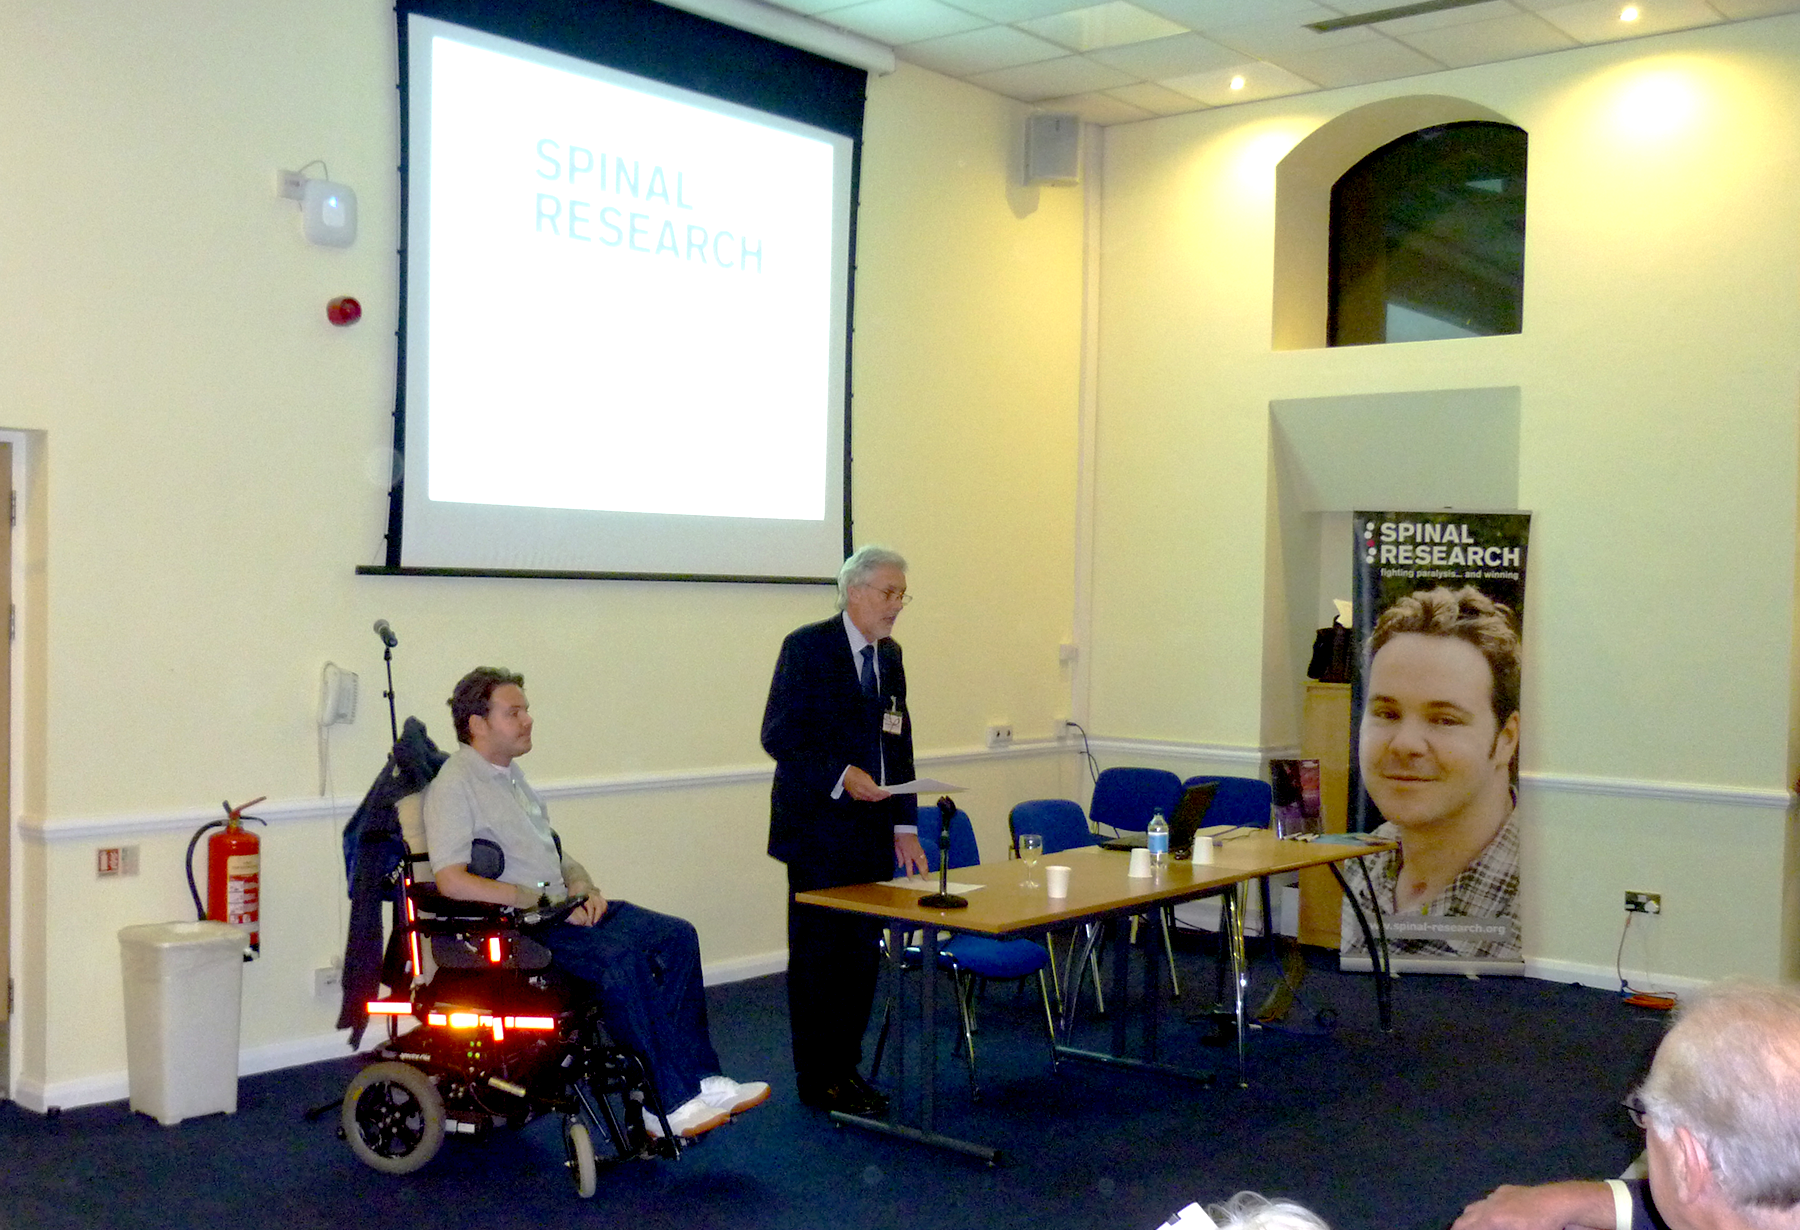 Dan Eley speaking at Spinal Research event at Kings College